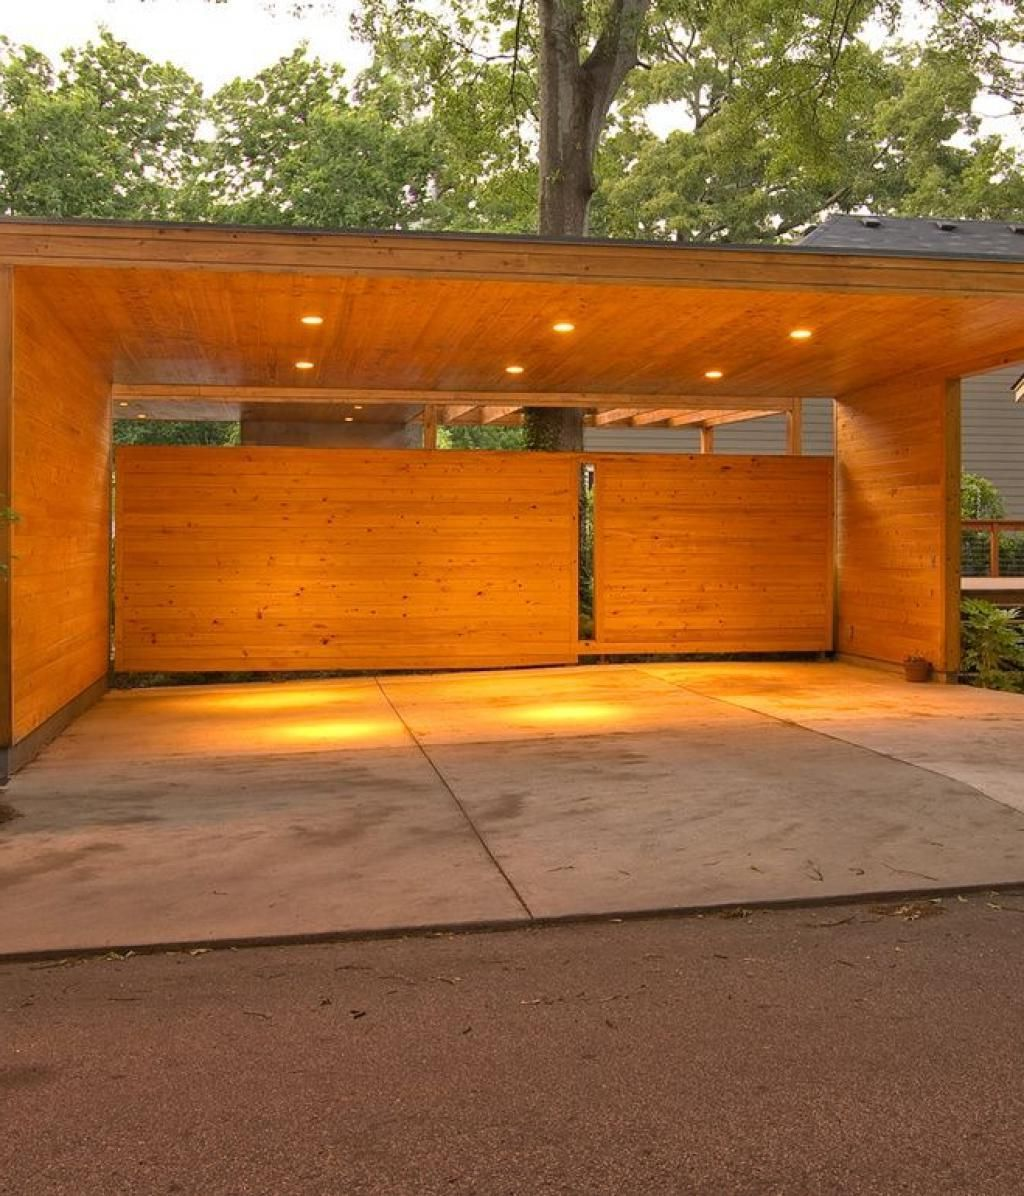 impresive design carport area with wooden design material. Black Bedroom Furniture Sets. Home Design Ideas